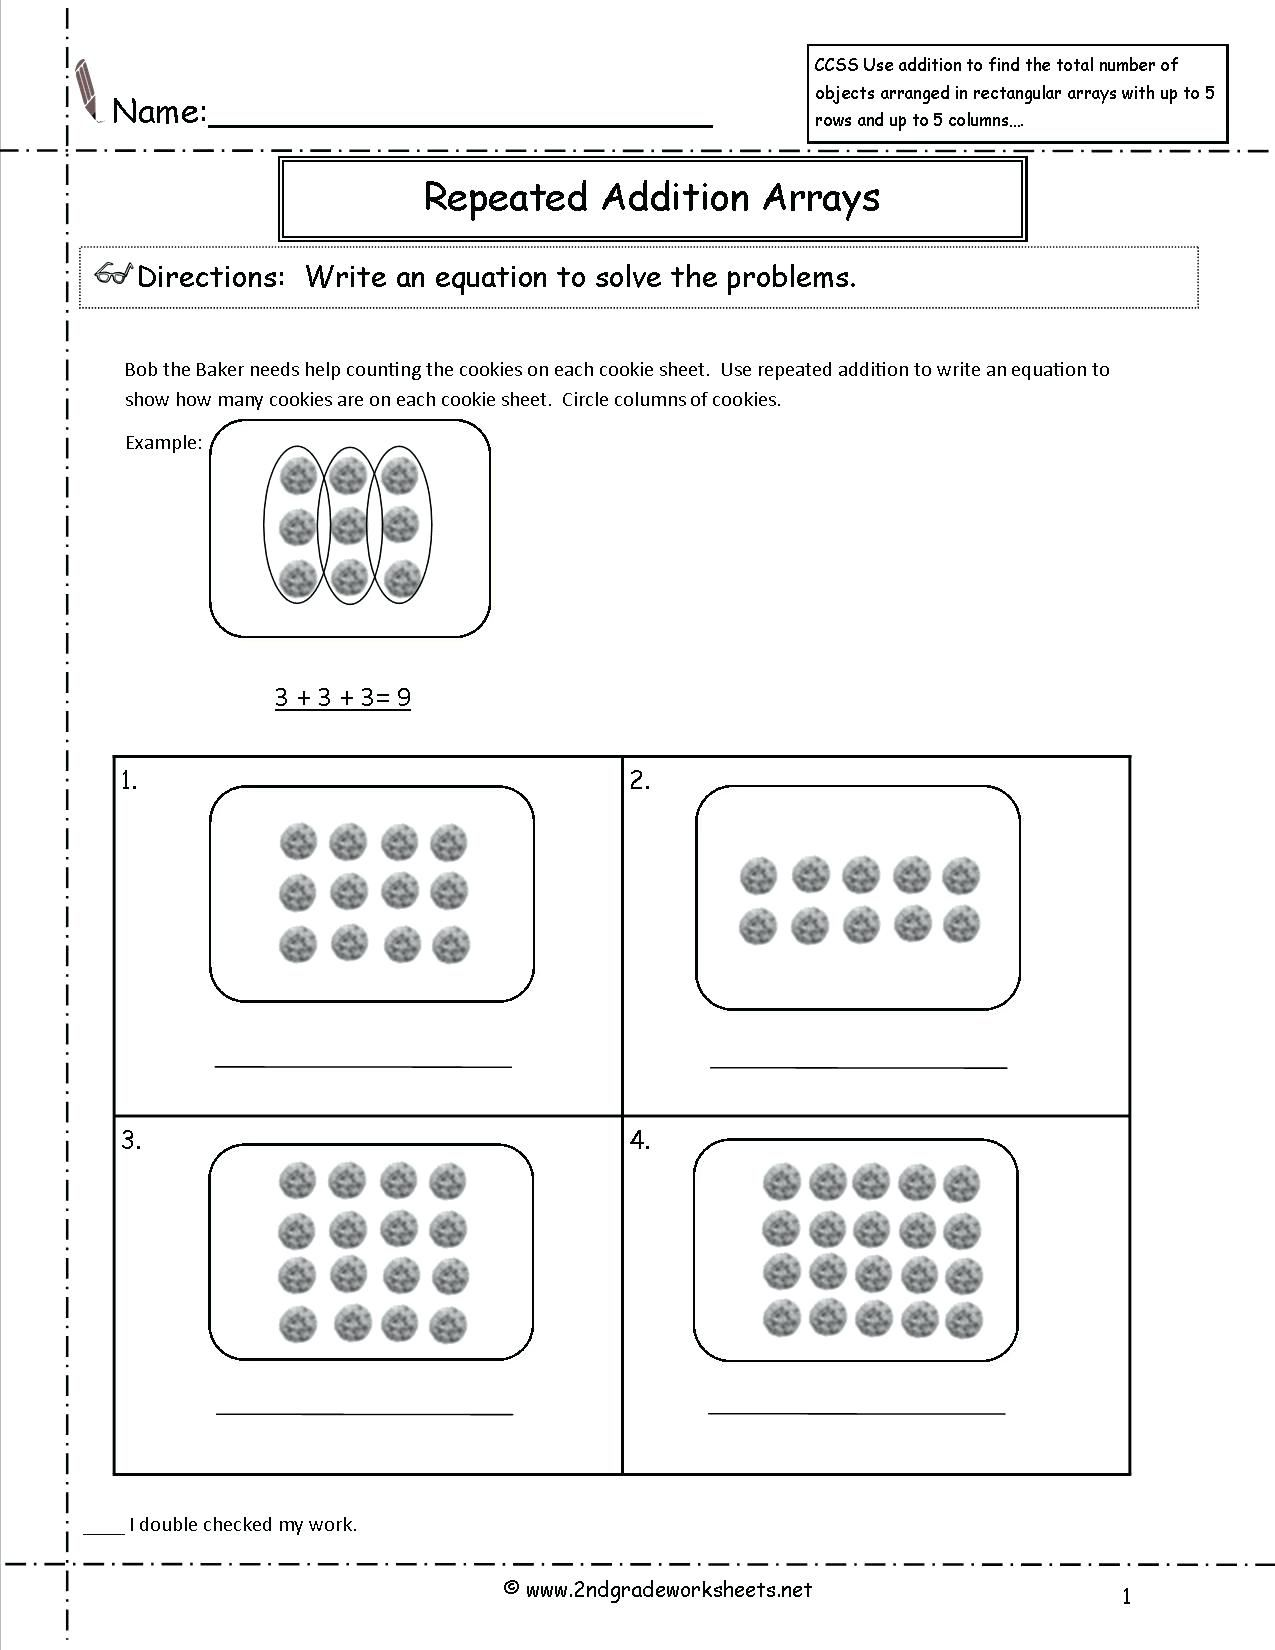 37 Simple Common Core Math Worksheets Ideas